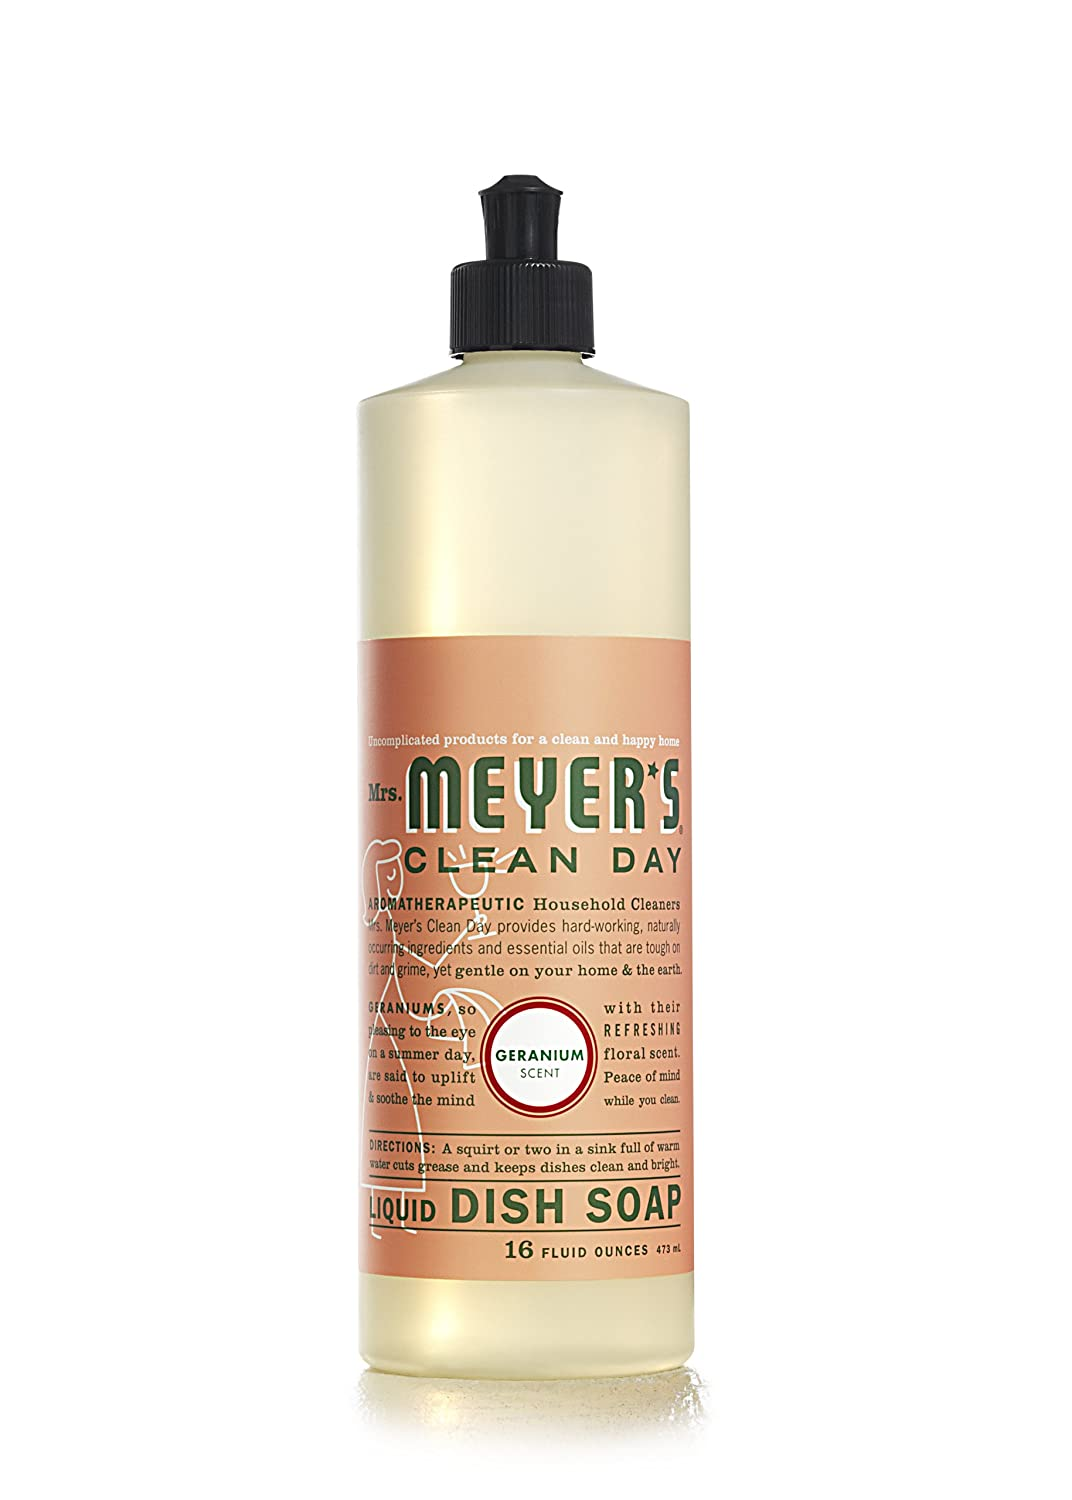 Mrs. Meyers Clean Day Liquid Dish Soap, Geranium, 16 Fluid Ounce by Mrs. Meyers Clean Day: Amazon.es: Salud y cuidado personal